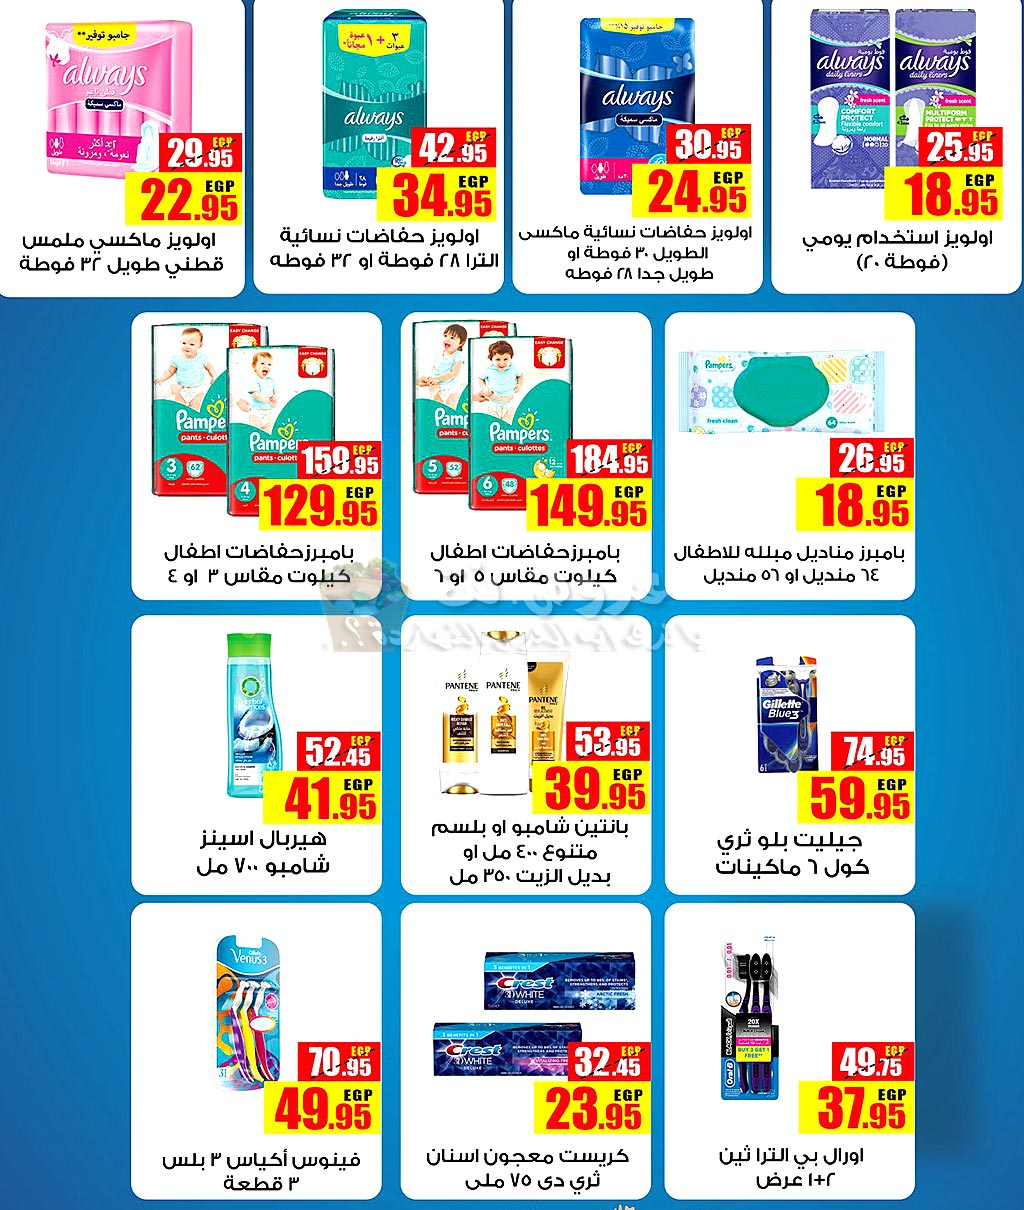 panda-egypt offers from 18july to 7aug 2019 page number 4 عروض بنده مصر من 18 يوليو حتى 7 أغسطس 2019 صفحة رقم 4